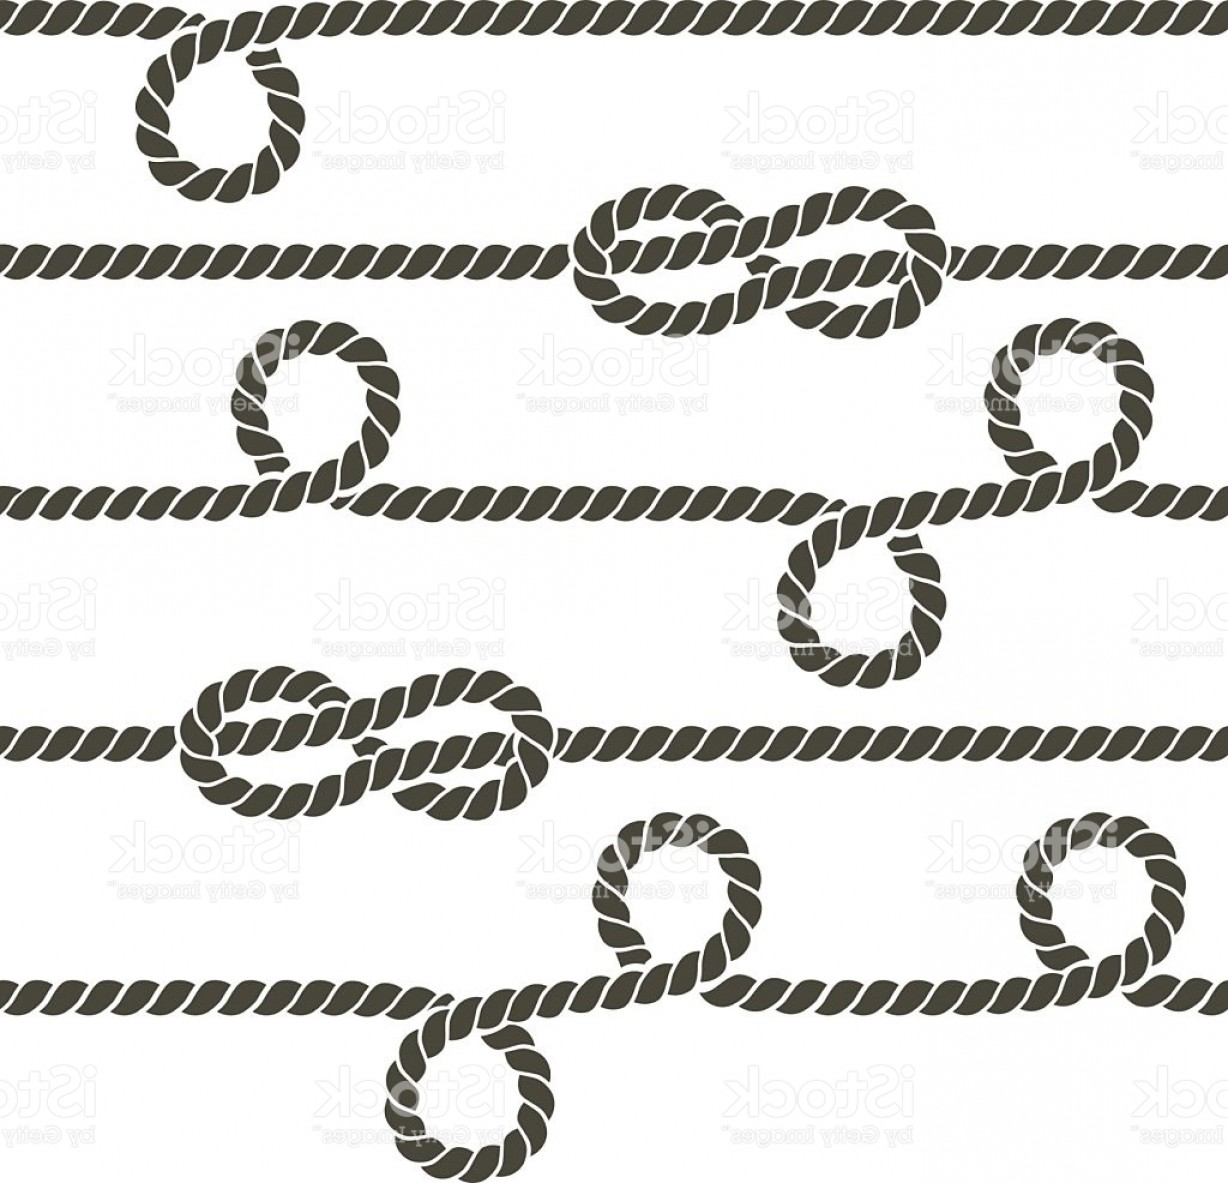 Design Vector Image Of Rope: Navy Rope With Marine Knots Vector Seamless Pattern Gm